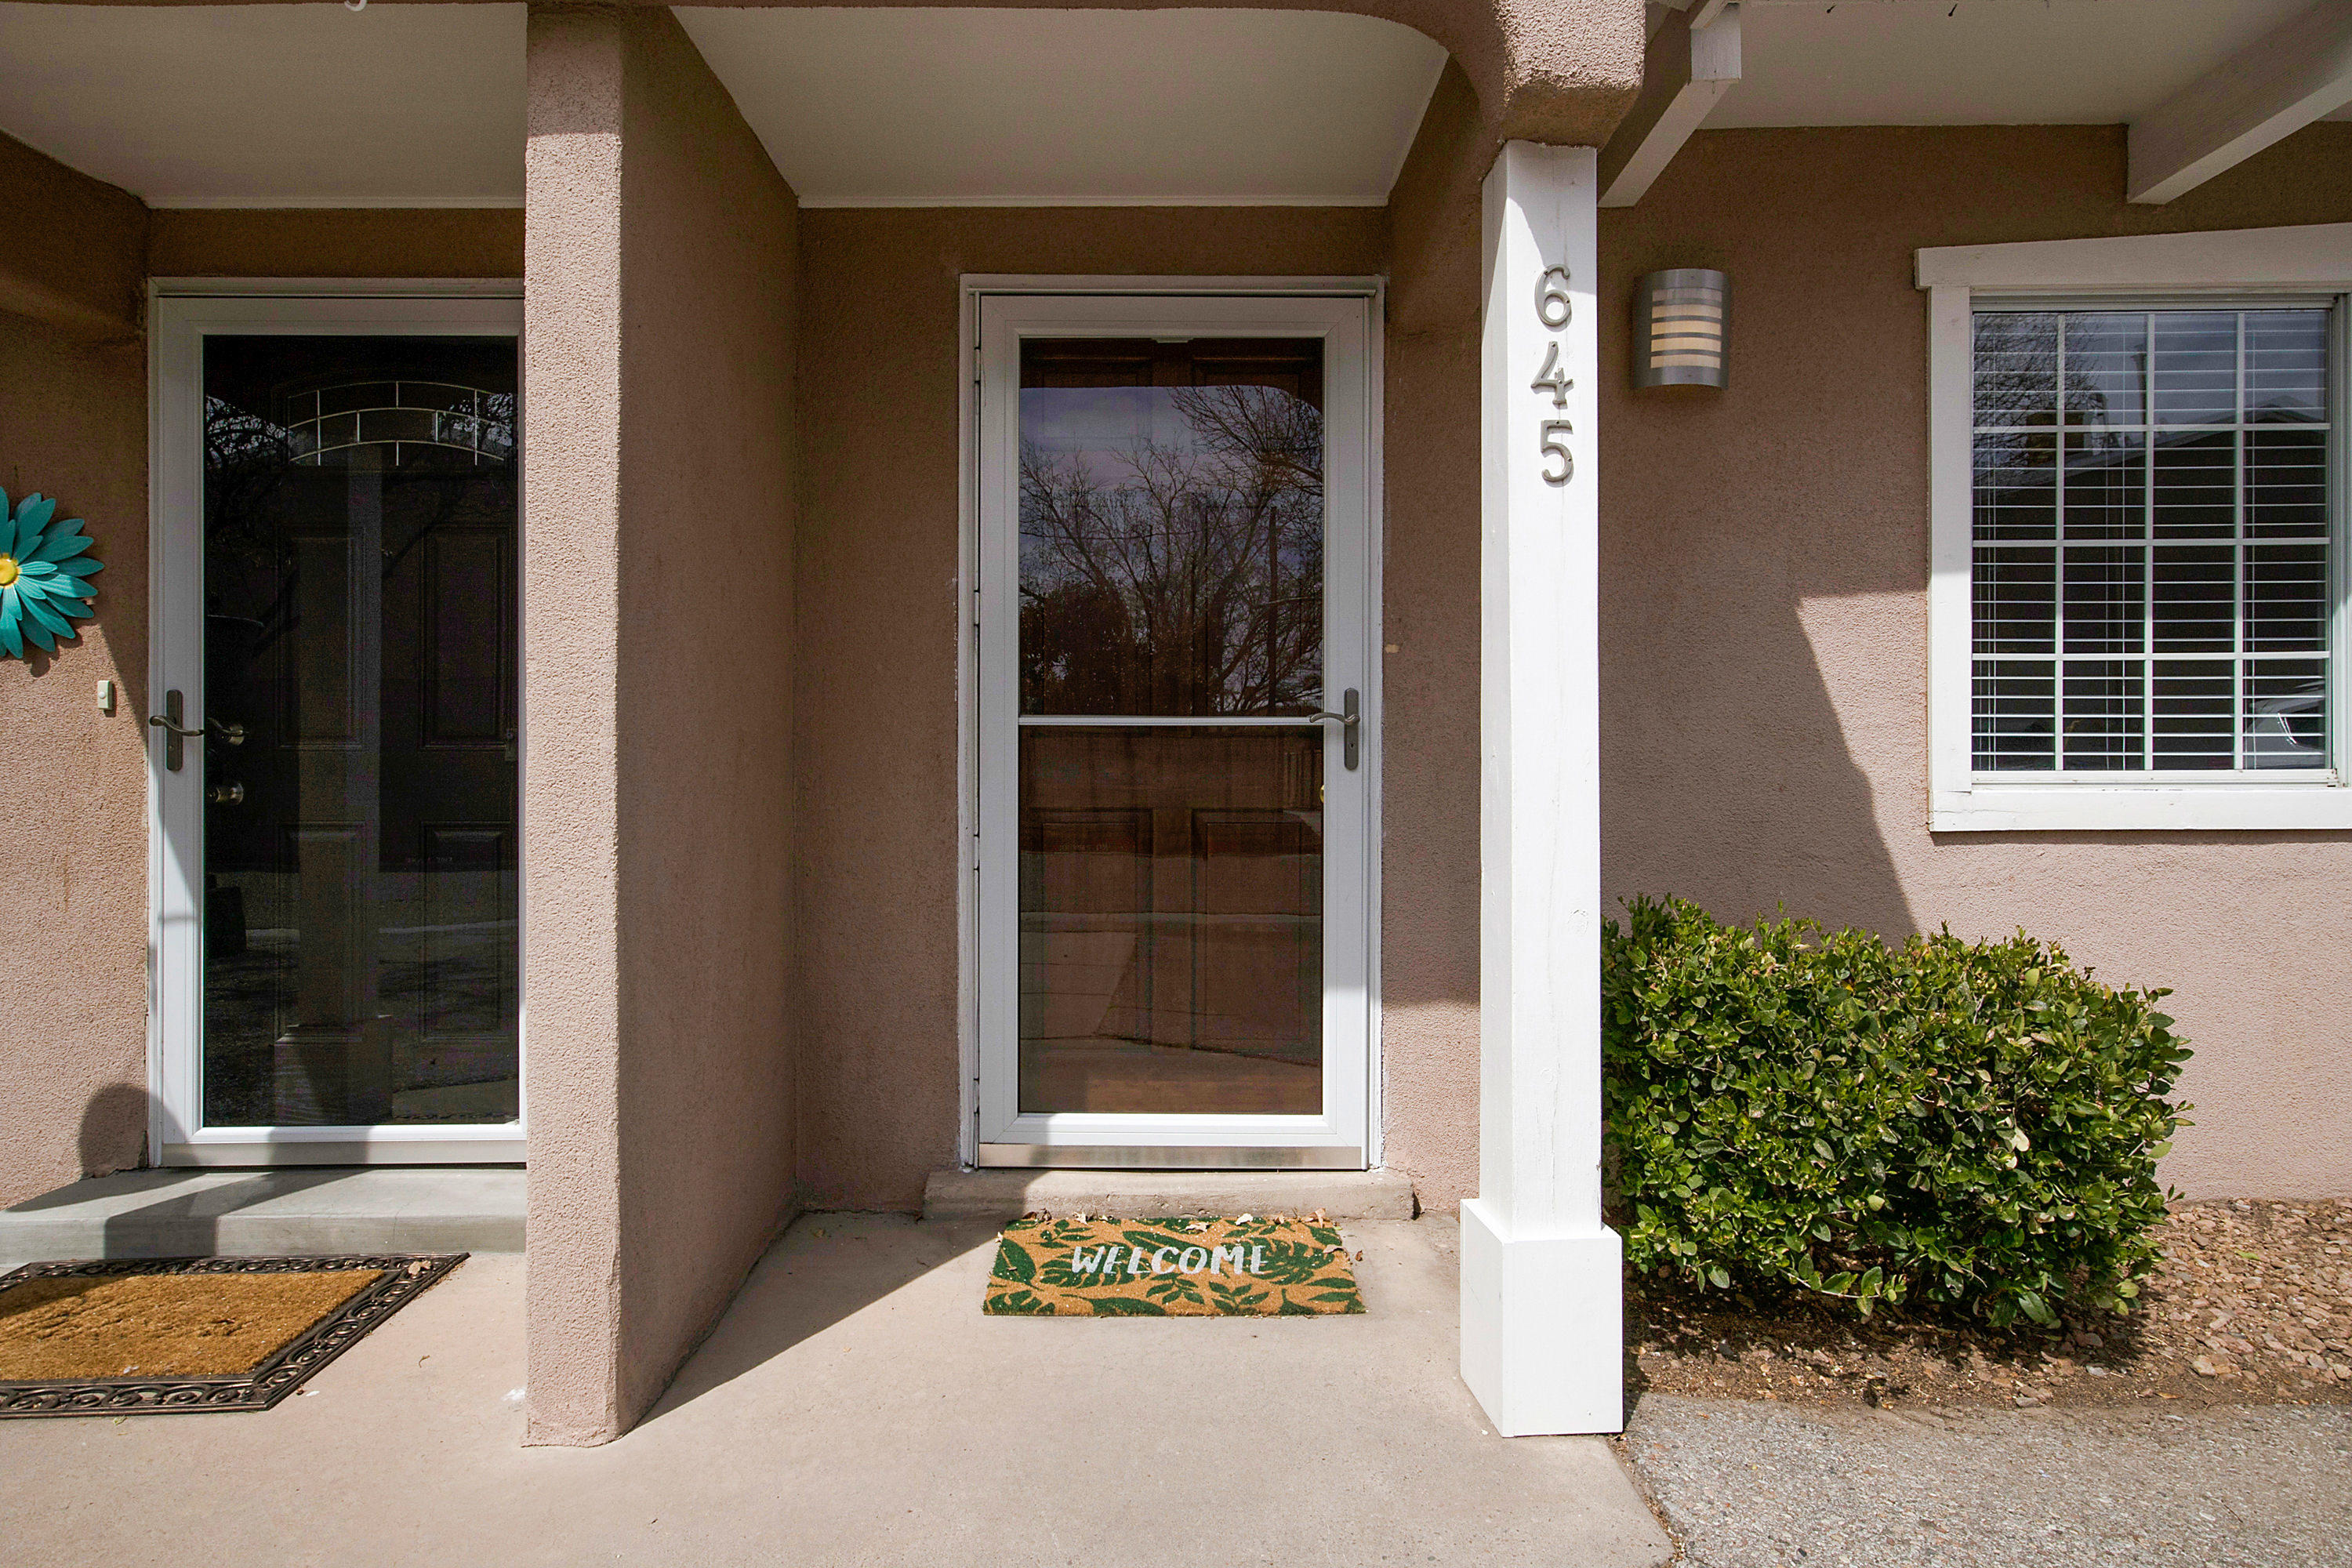 Come see this beautiful townhome is located in the heart of North Valley.  When you walk in you will immediately notice the fresh paint and brand new carpet.  It has a park less then a block away.  You have short couple block walk to Planet Fitness in the morning or to Dinner at Sadie's, Little Anita, and Luigis.  Smith is right around the corner as well.  Such a convenient location in the north valley.  It wont last long.